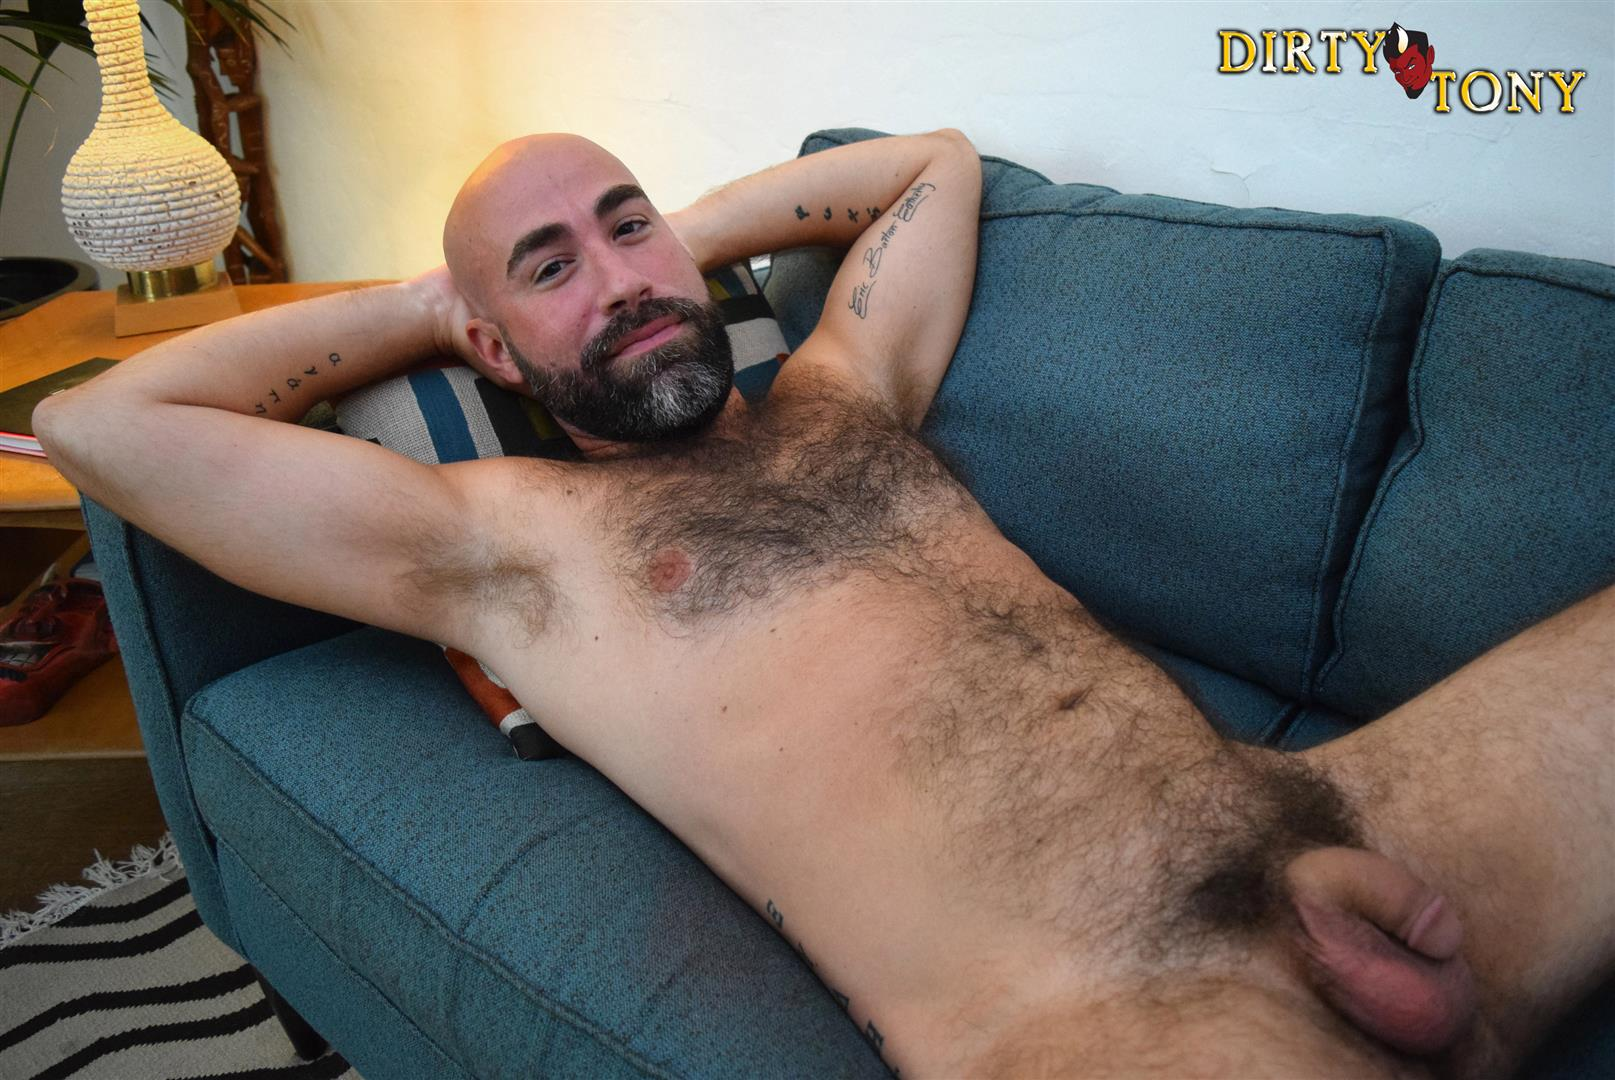 Dirty Tony Damon Andros Hairy Otter With A Thick Cock Amateur Gay Porn 04 Jocked Up Furry Otter Stroking His Thick Cock